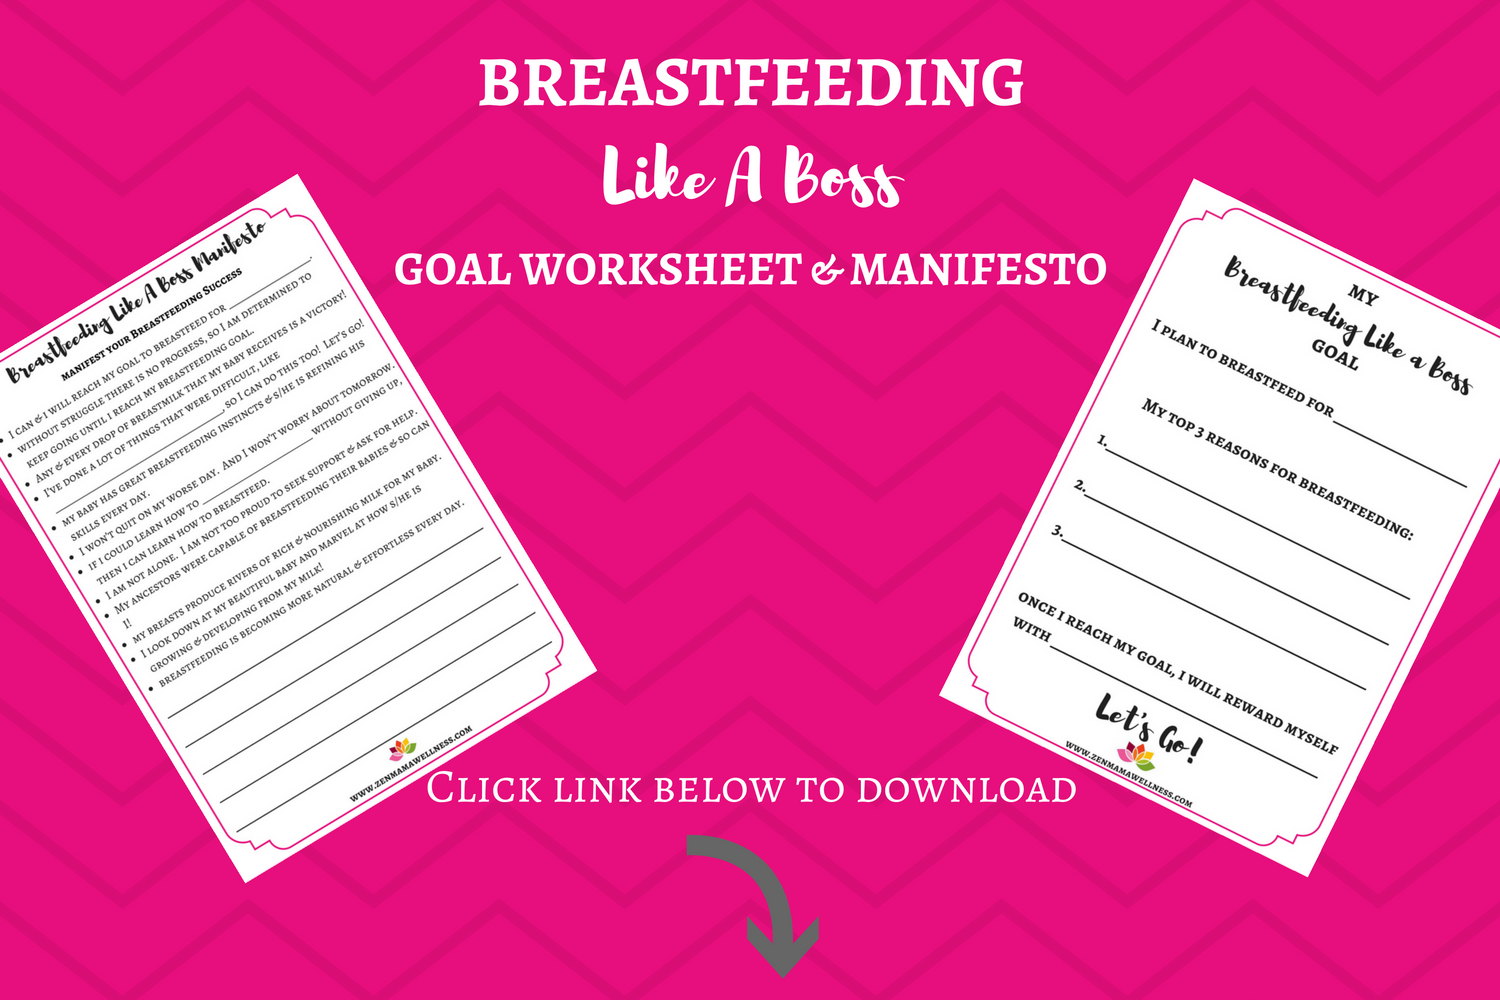 Create Your Personal Goal For Breastfeeding Even While